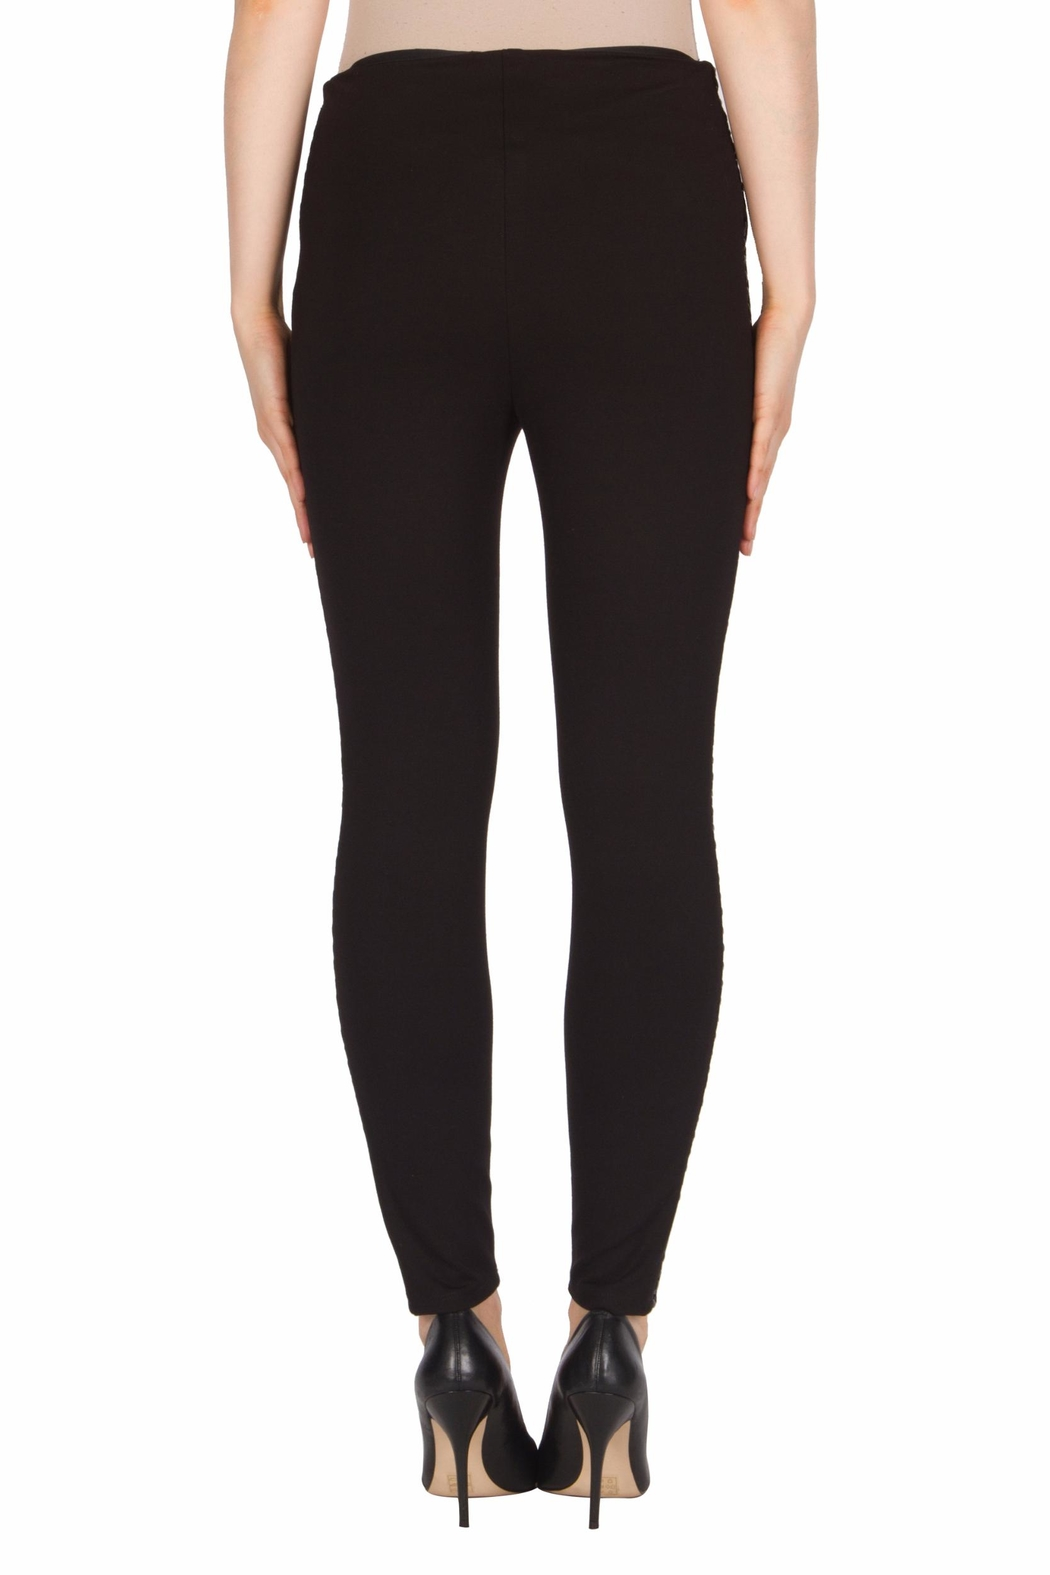 Joseph Ribkoff Faux-Leather Trimmed Pant - Side Cropped Image